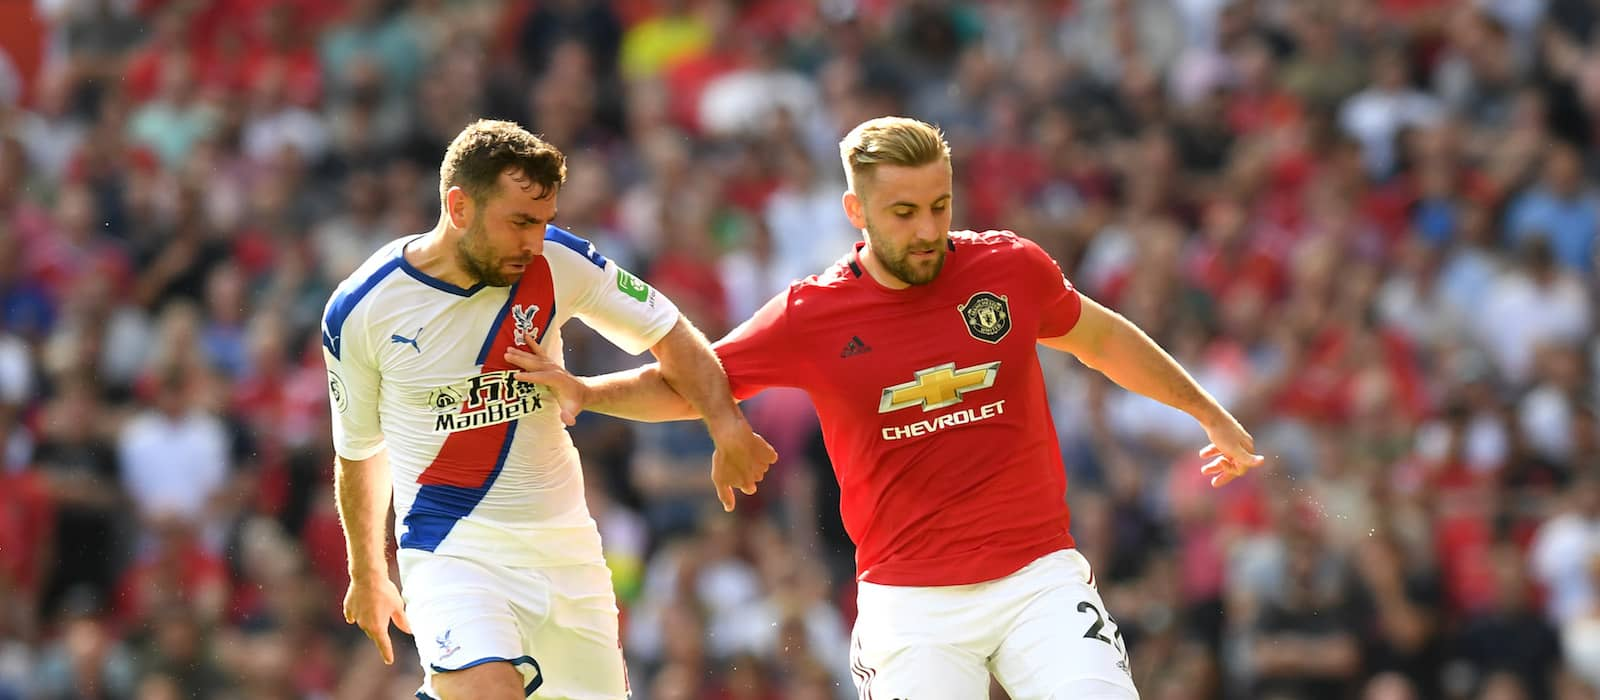 Nemanja Matic, Luke Shaw travel to Dubai to continue rehabilitation process – report